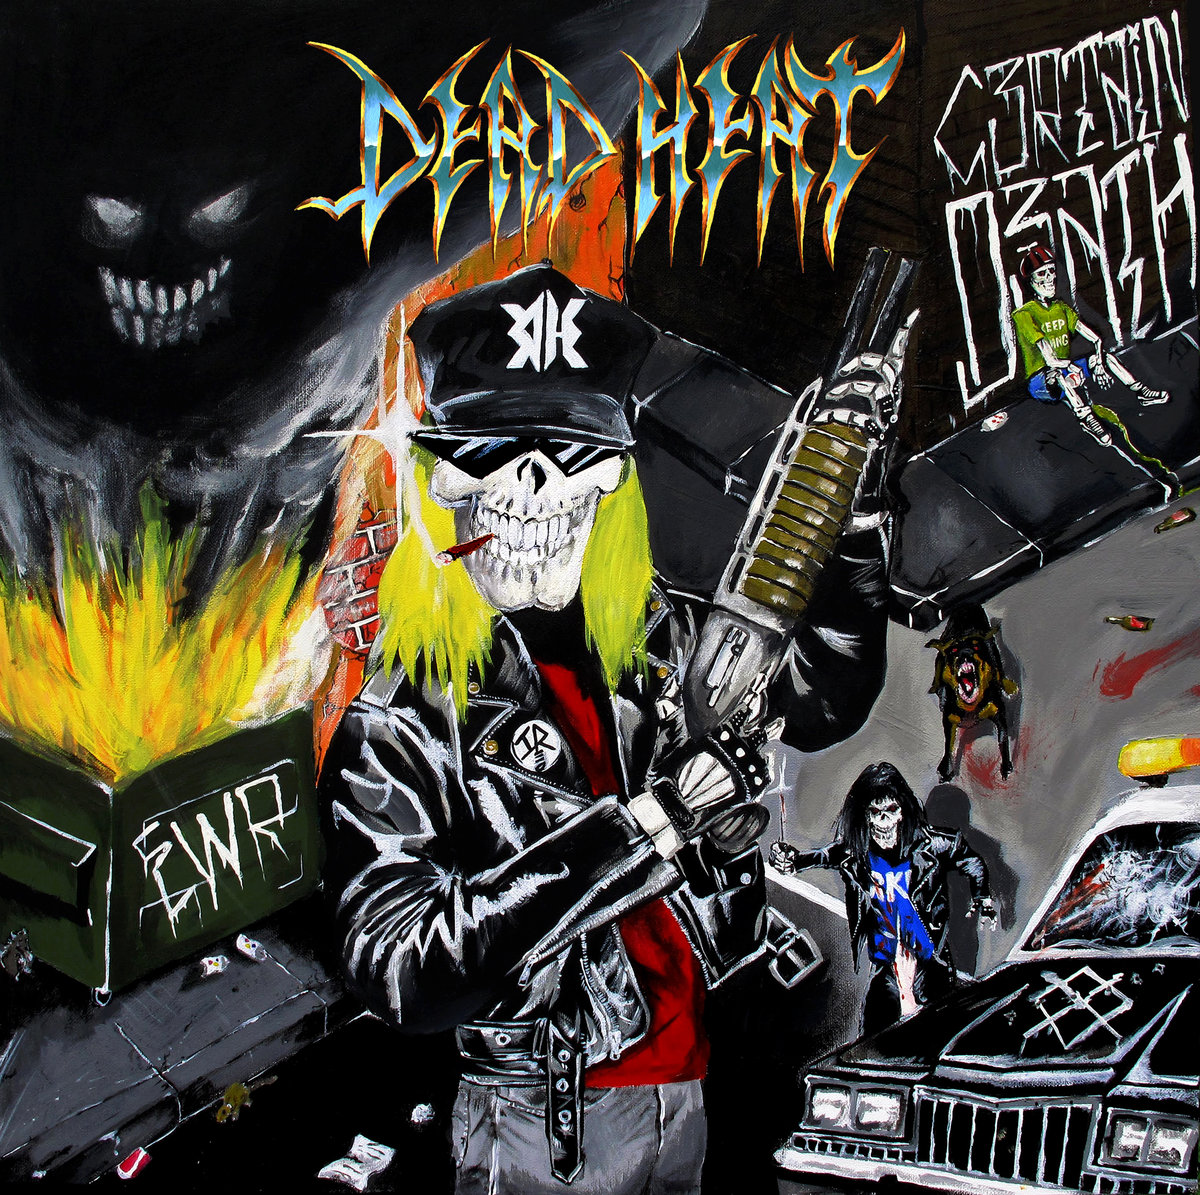 Dead-Heat-Certain-Death